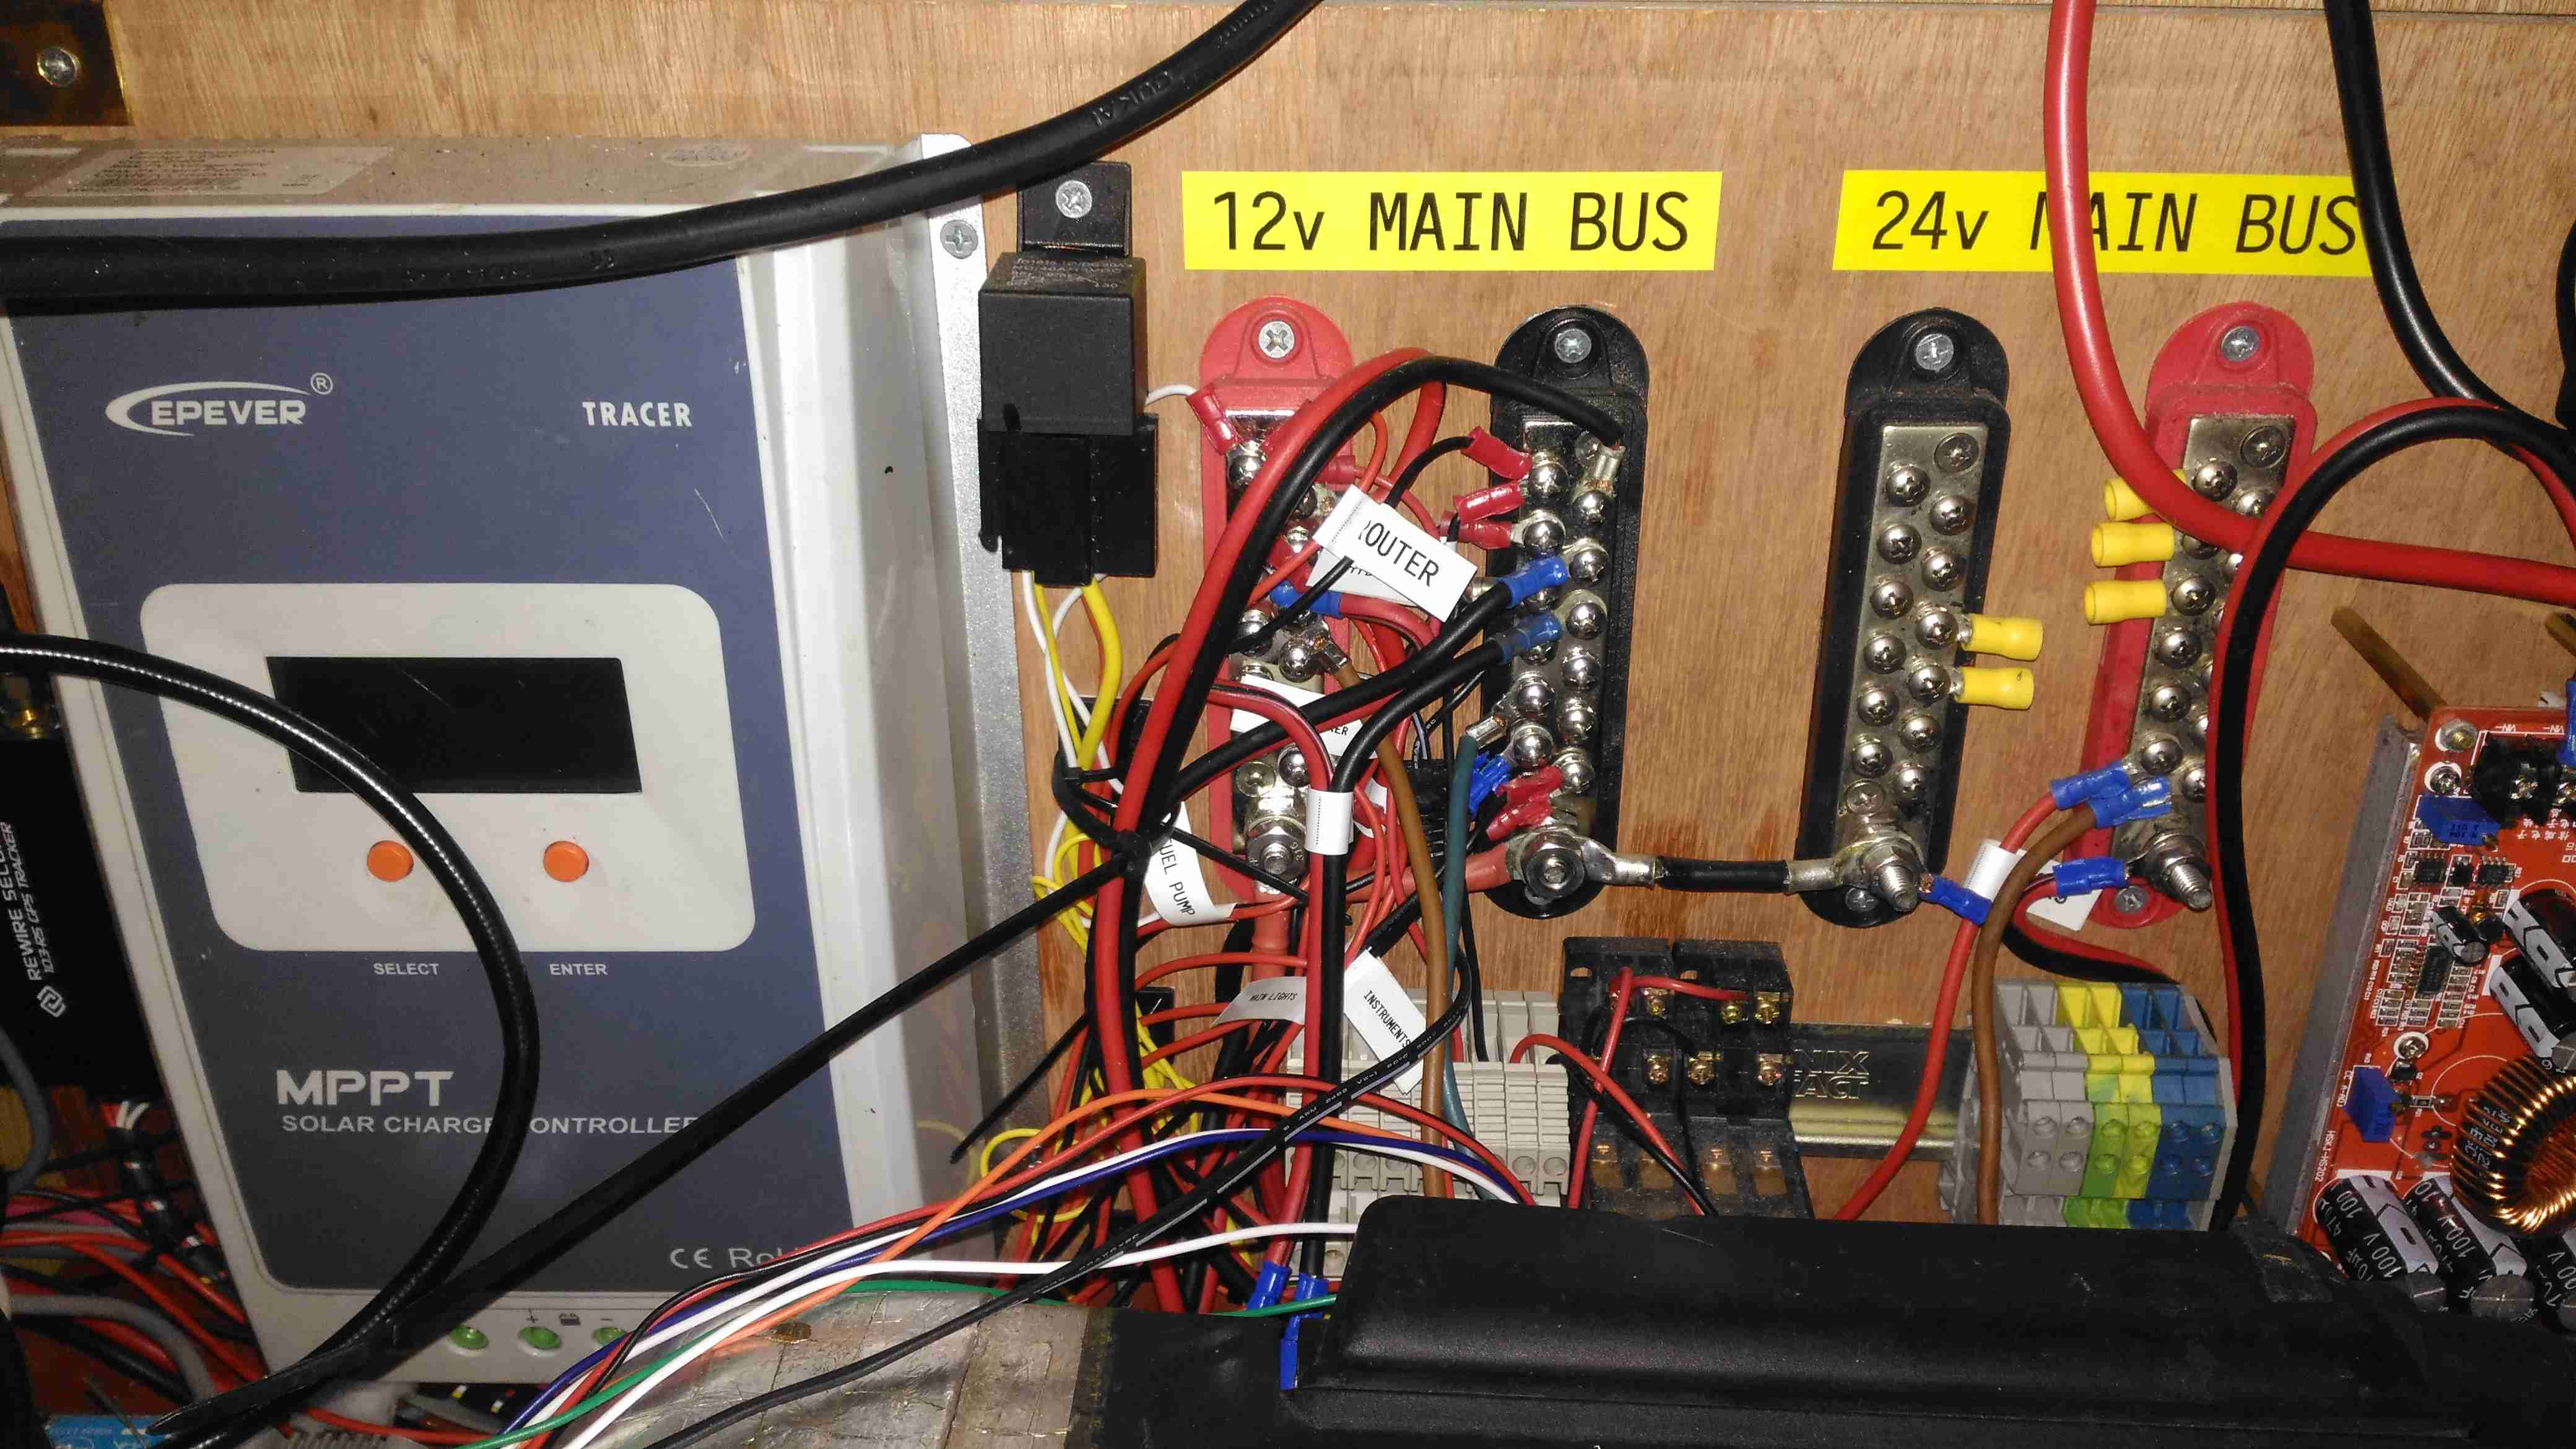 Router Motherboard Archives Experimental Engineering 12 Volt Timer Relay Maplin Main Bus Bars Solar Controller